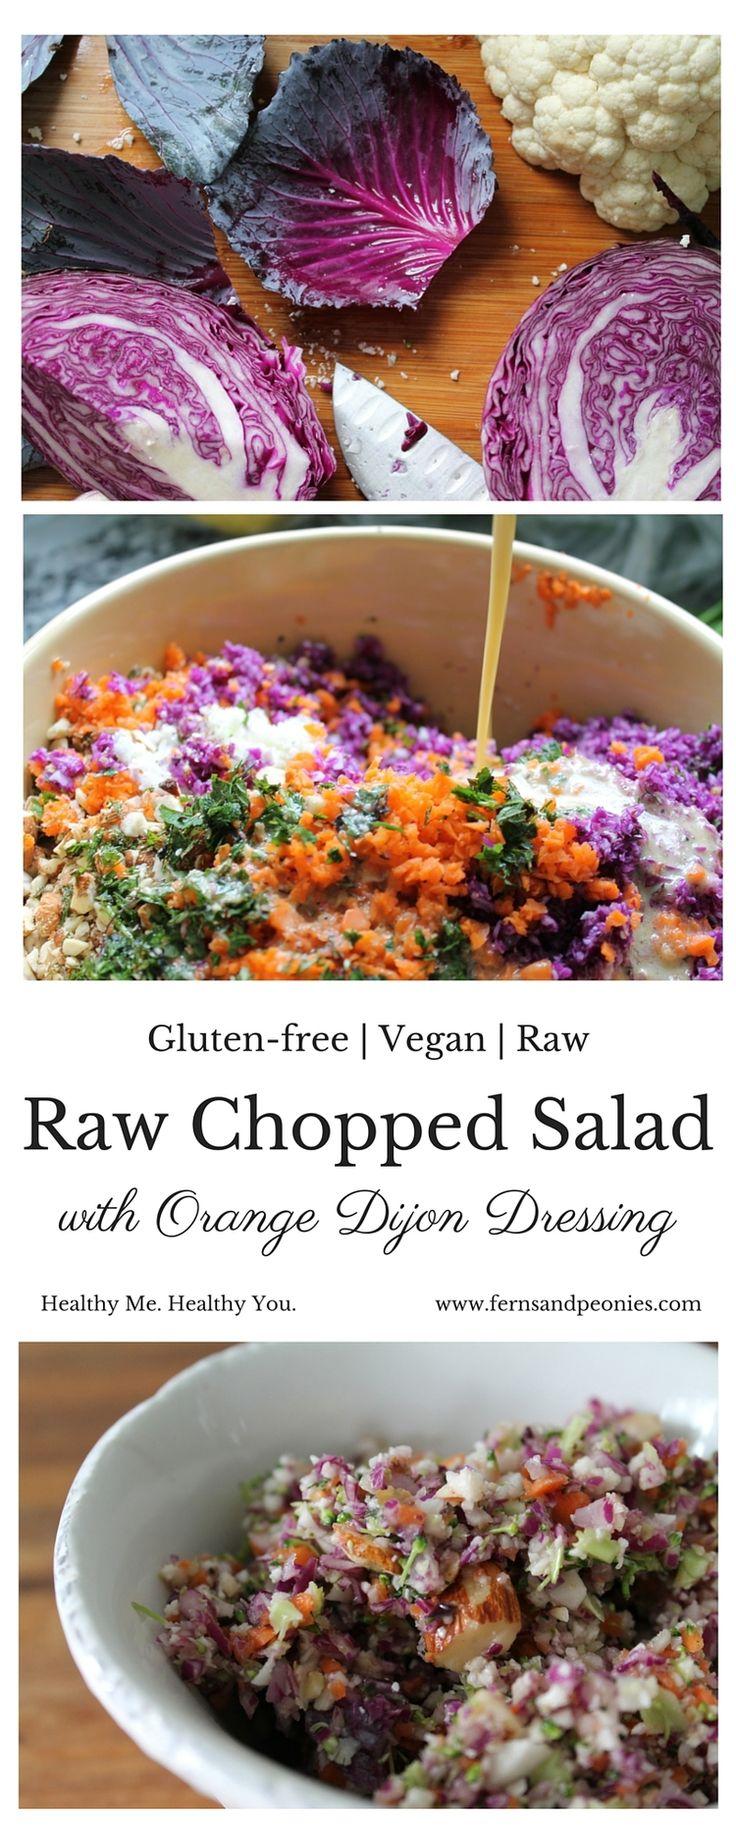 how to lose weight on a raw vegan diet